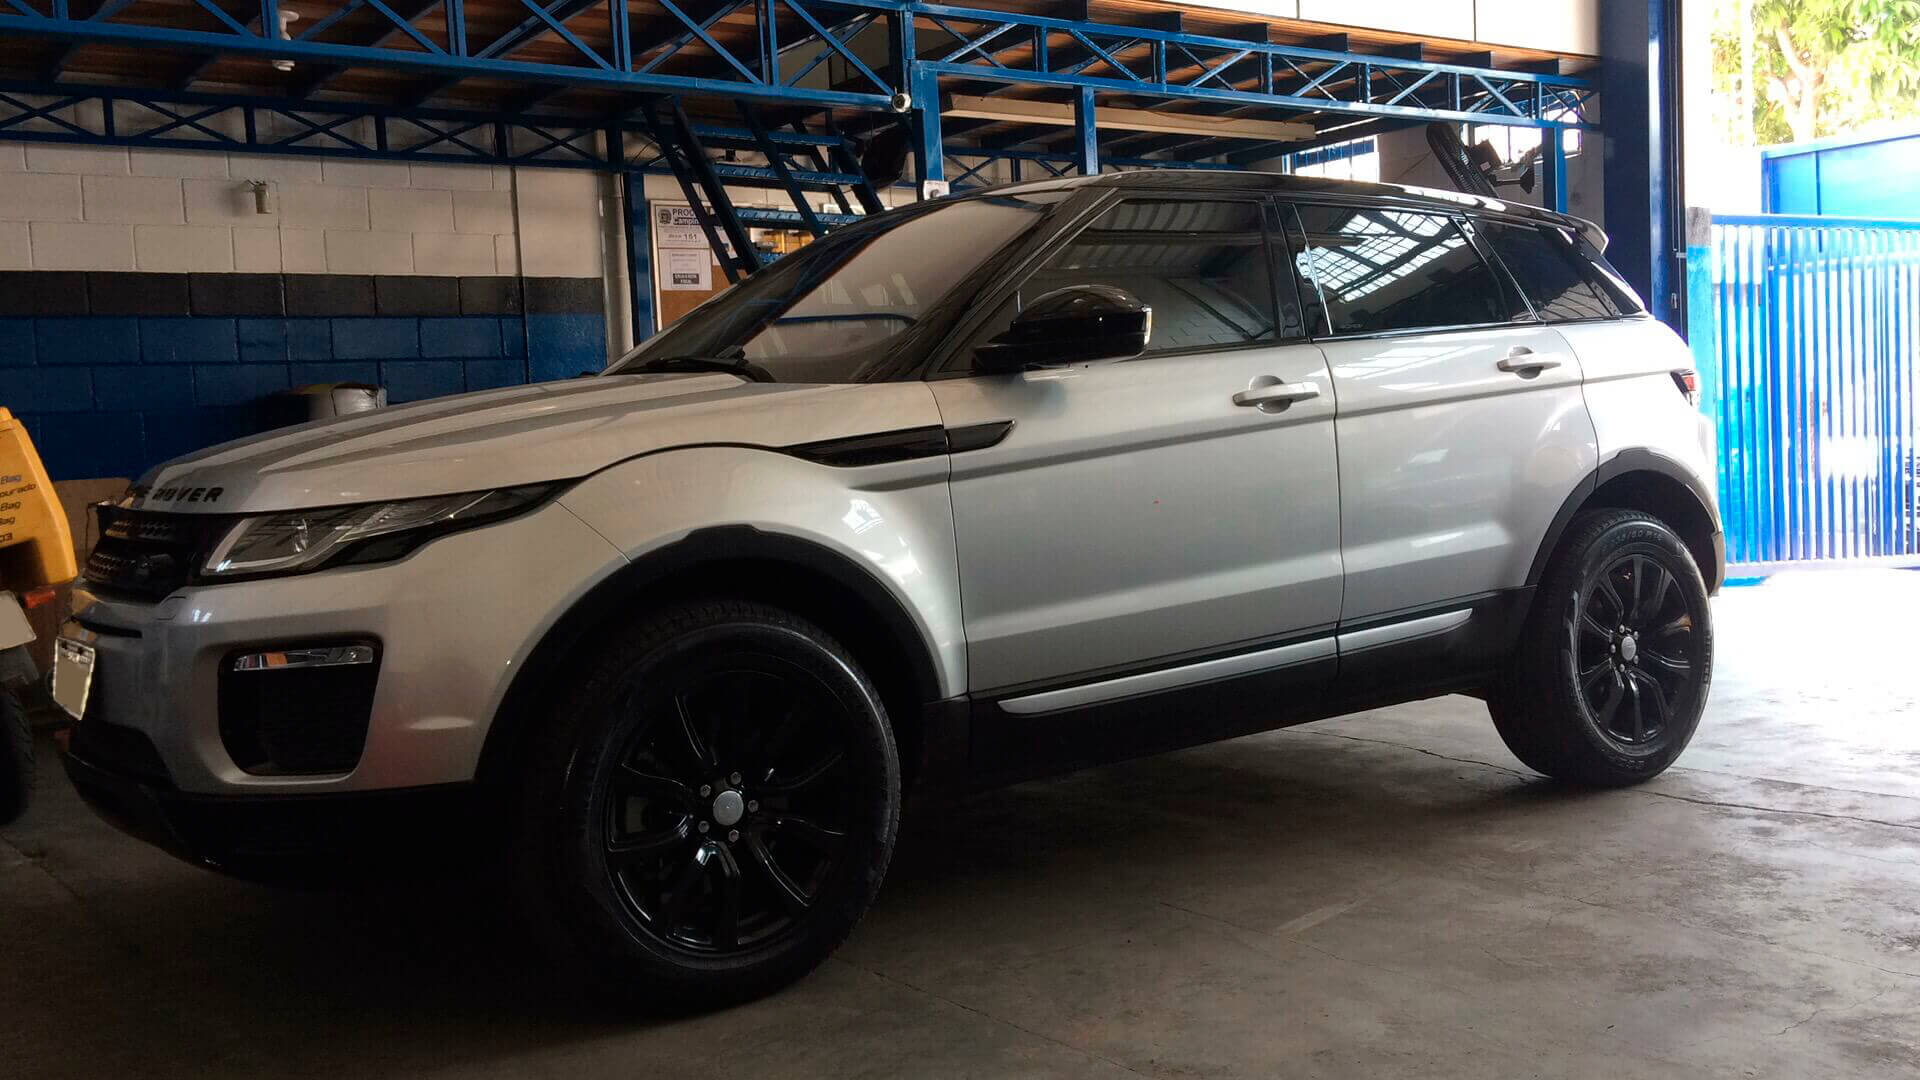 Conserto Air Bag Range Rover Evoque